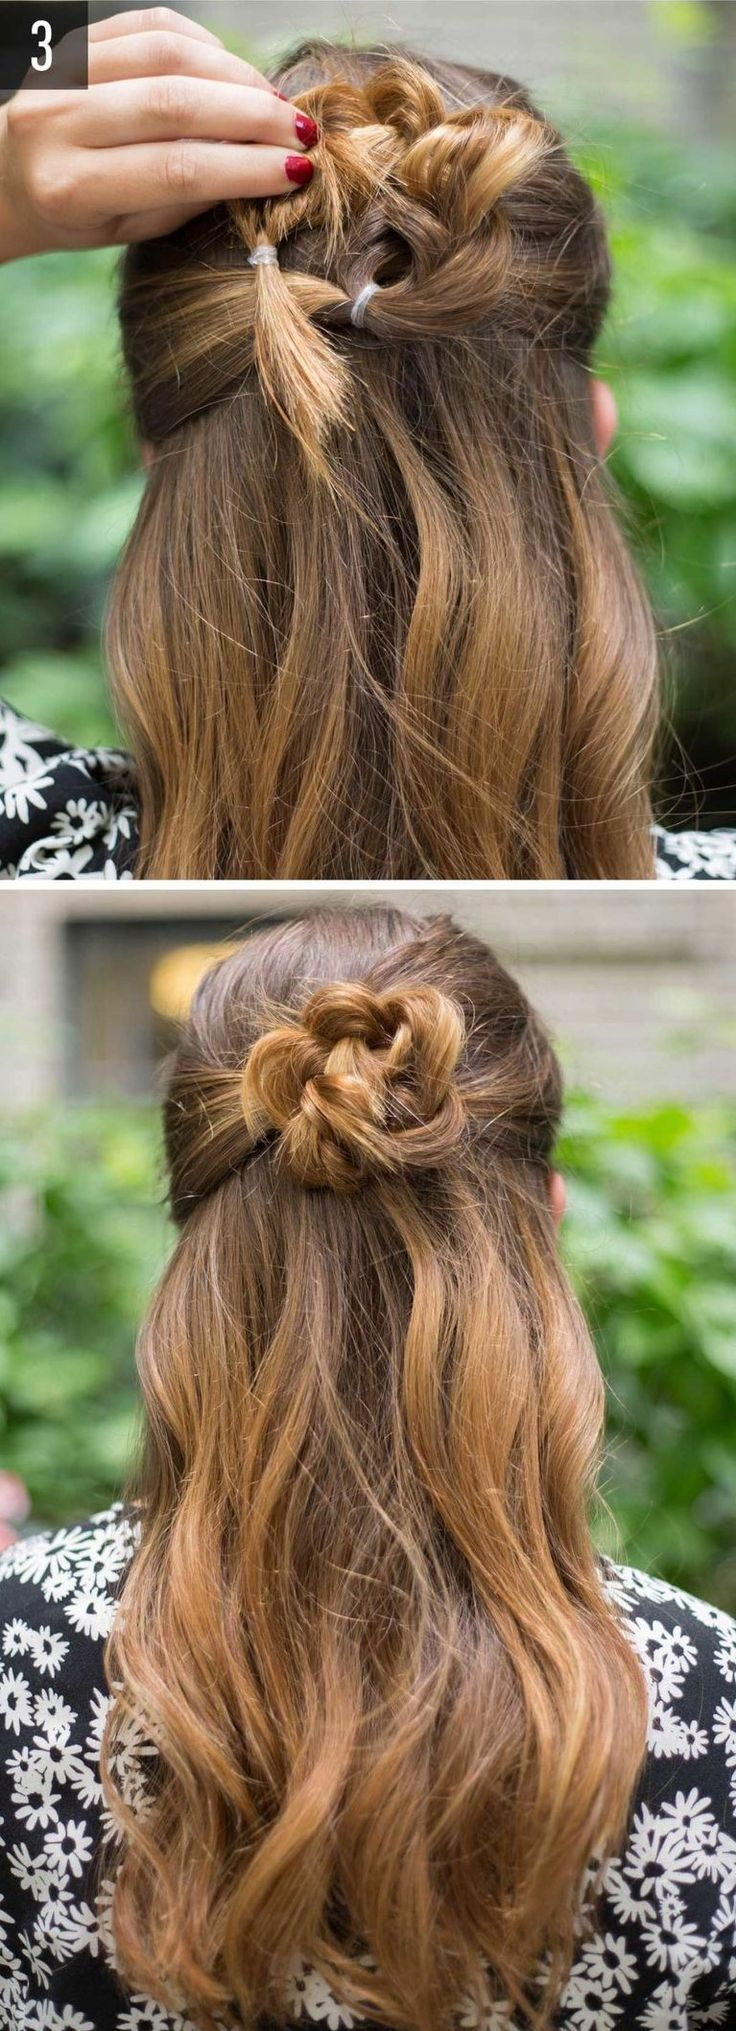 Several Tutorials and Models of Sublime Braid Hairstyle